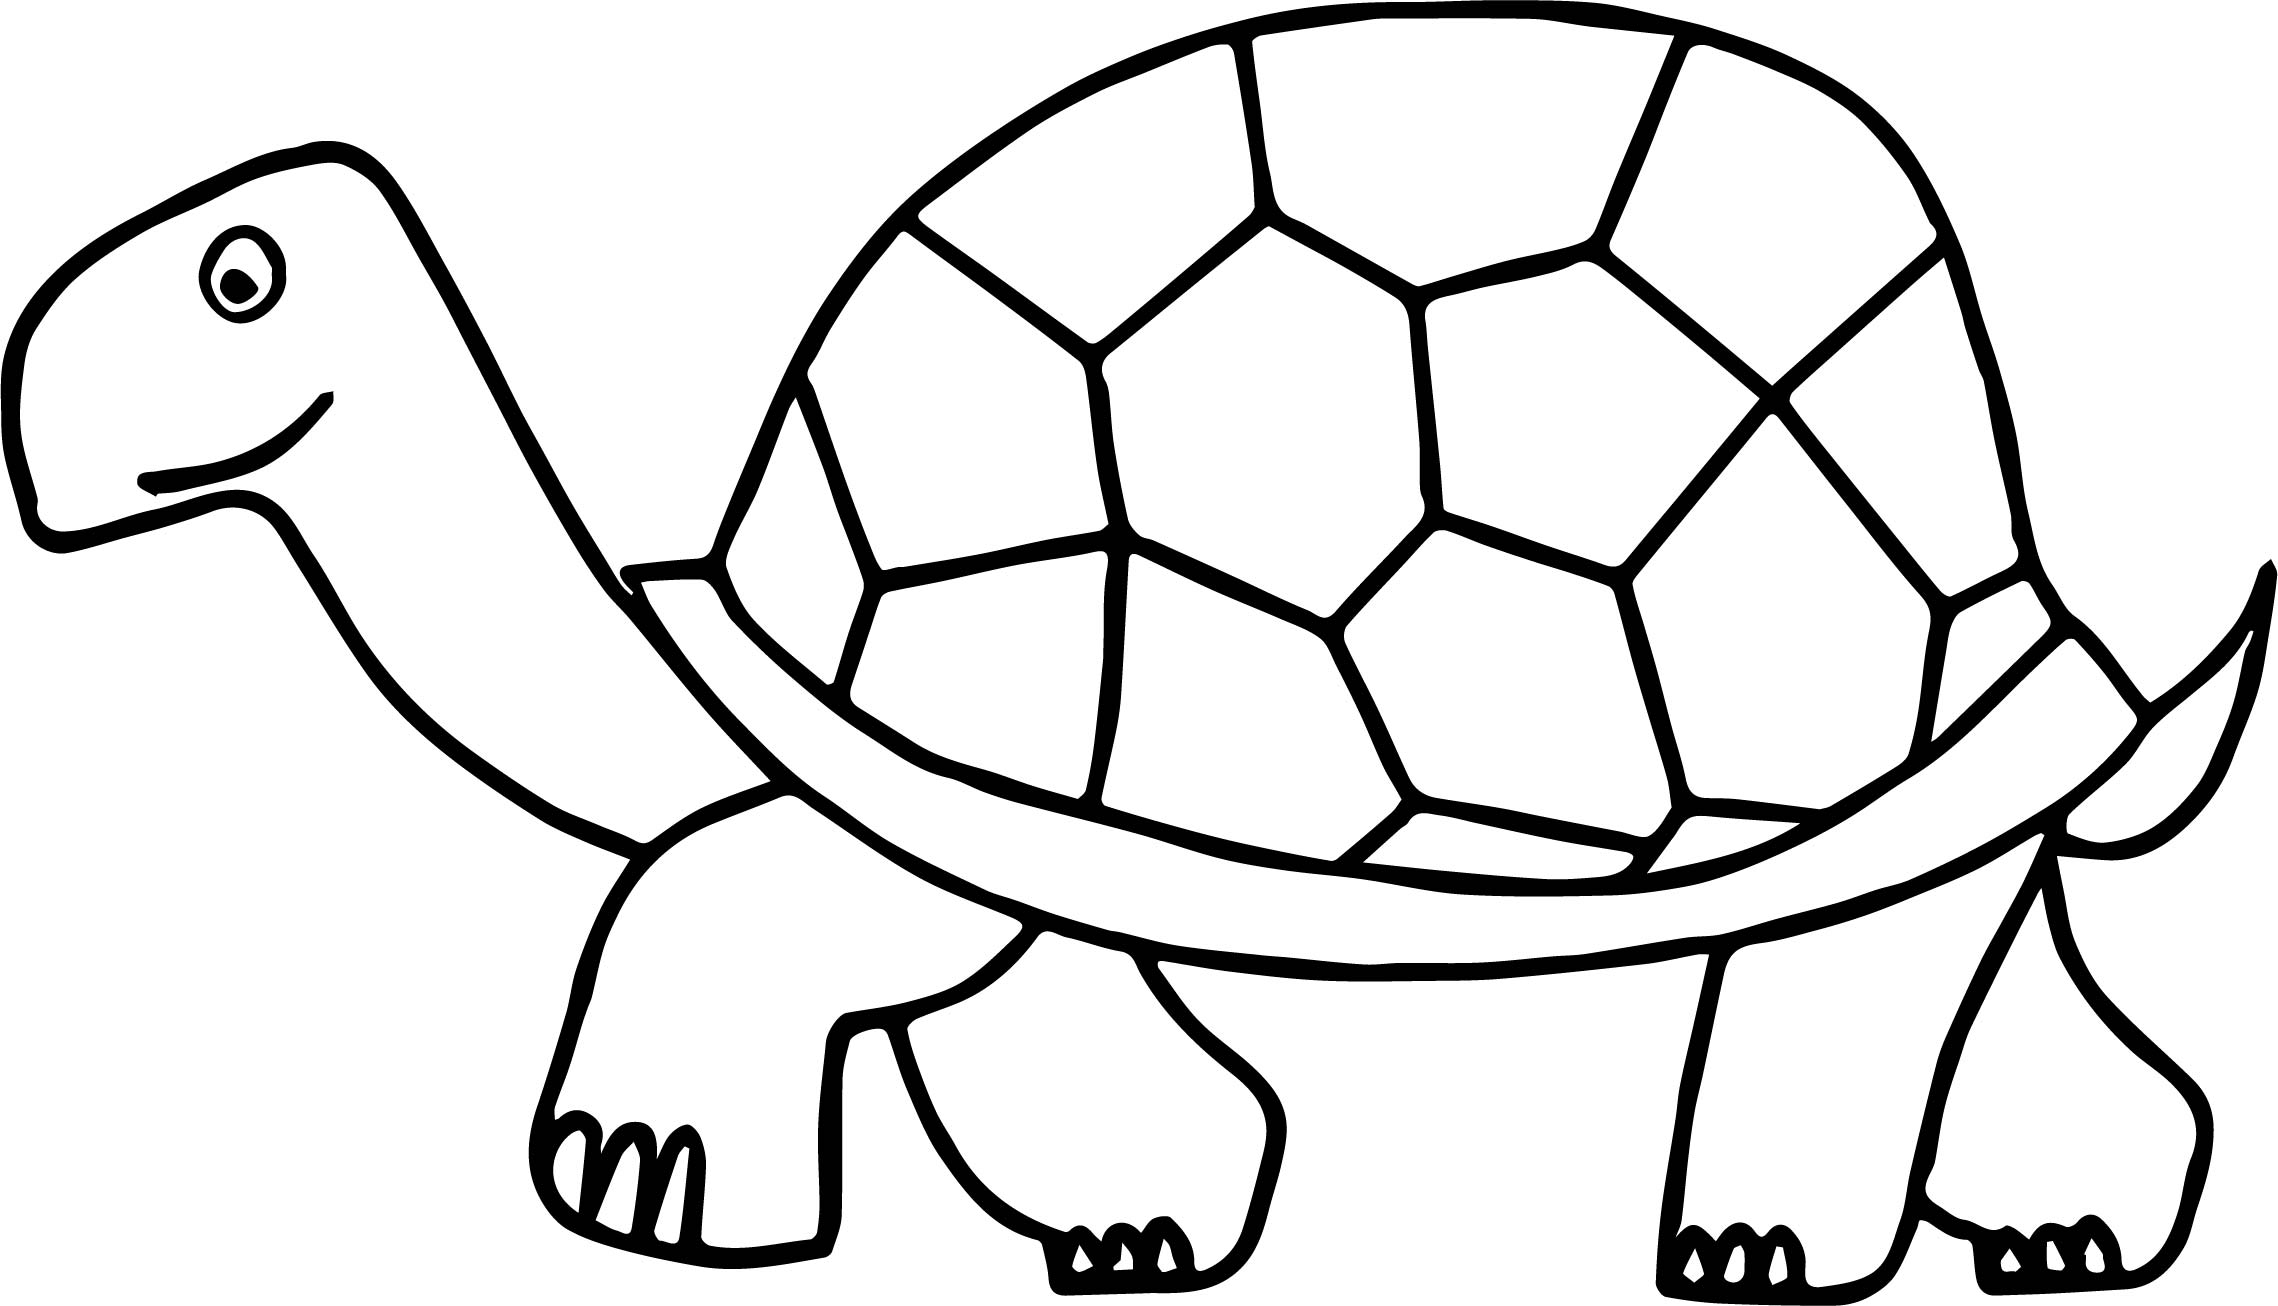 Walking tortoise turtle coloring page for Turtle coloring pages